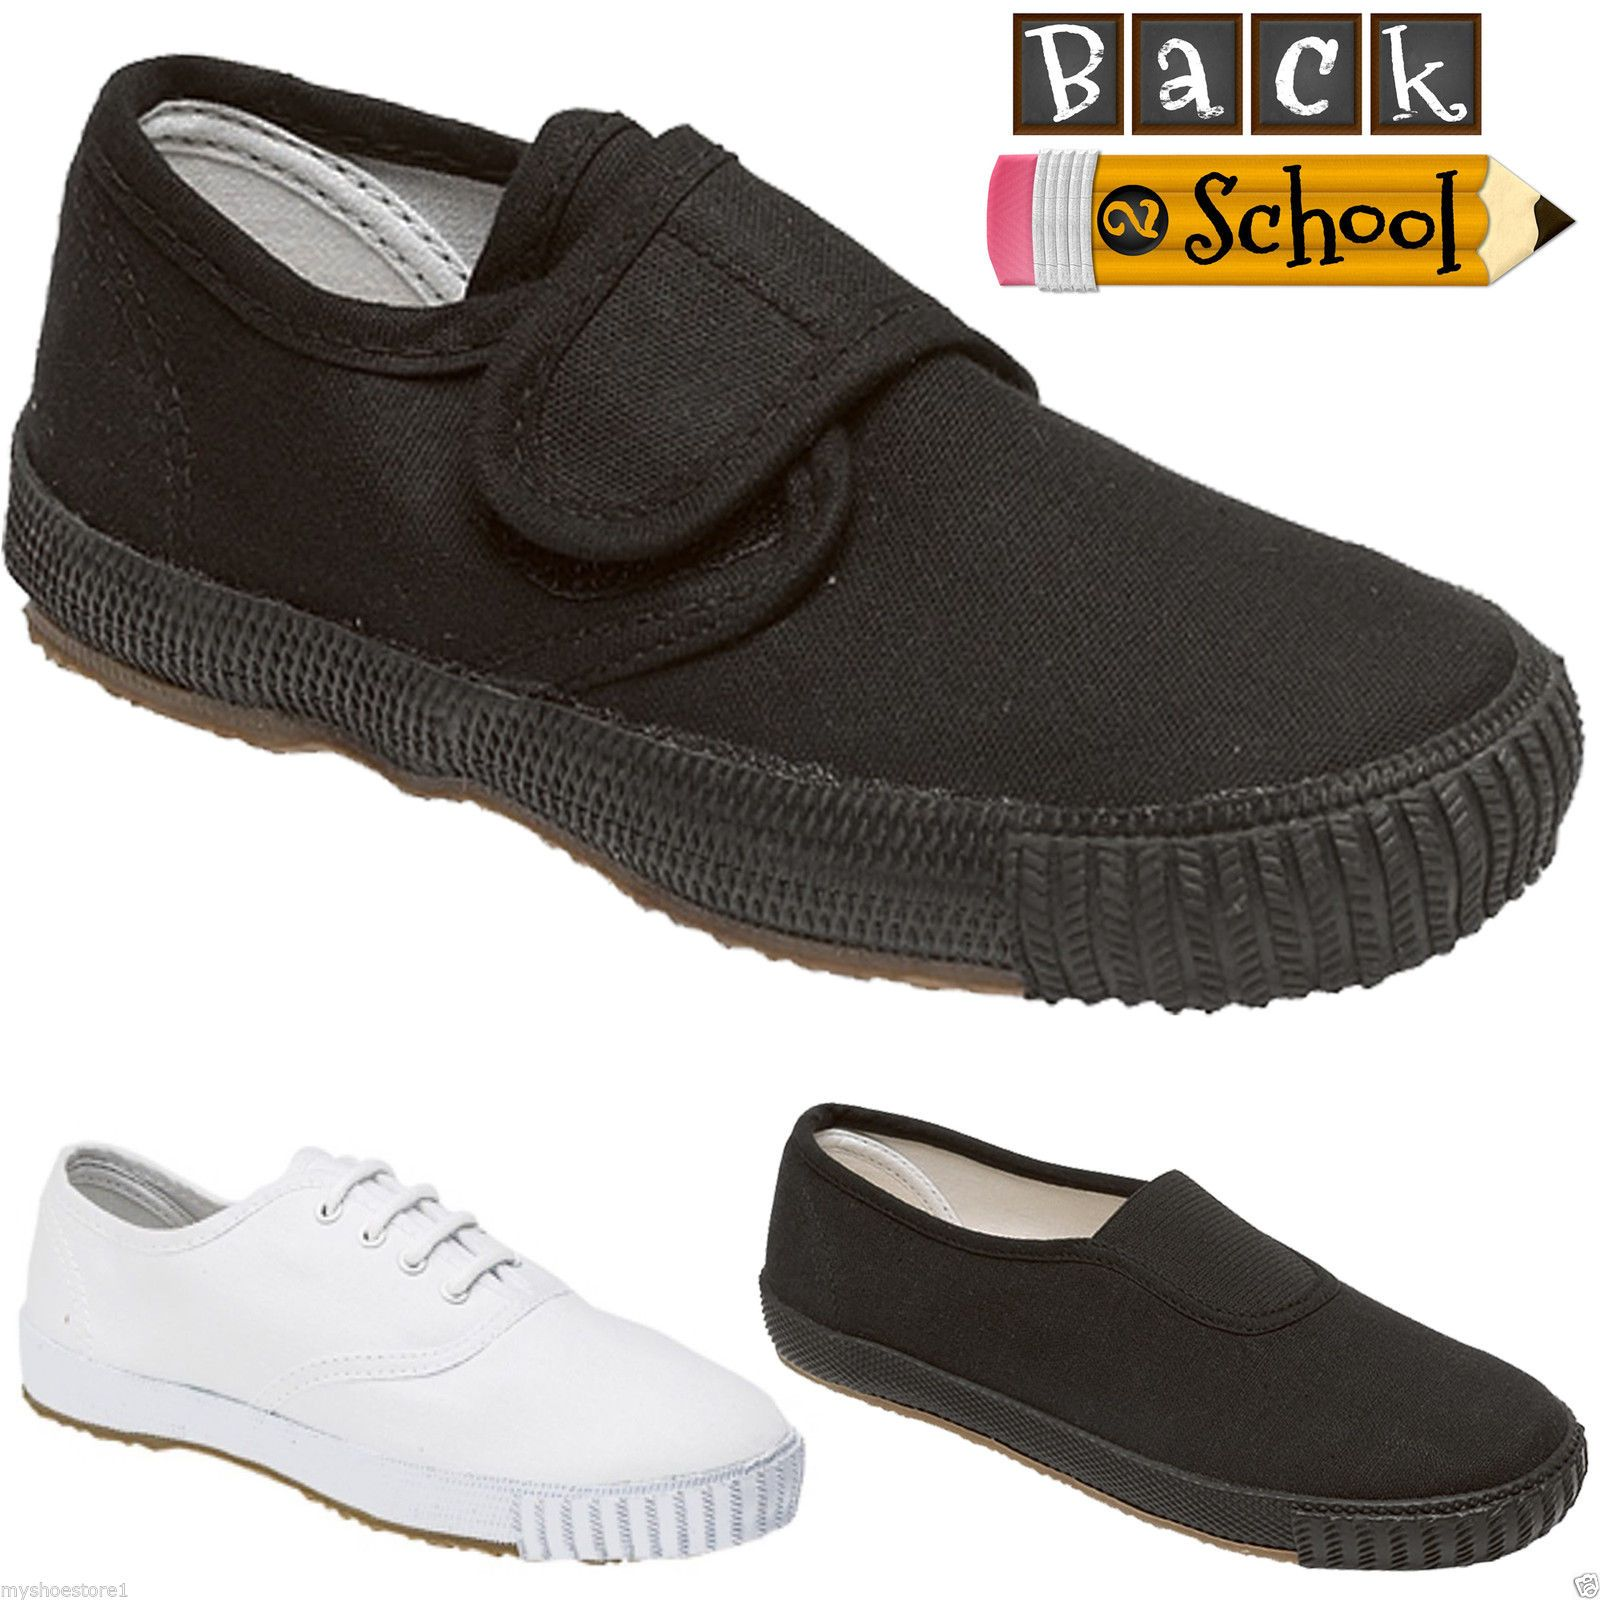 Are Plimsolls Sports Shoes